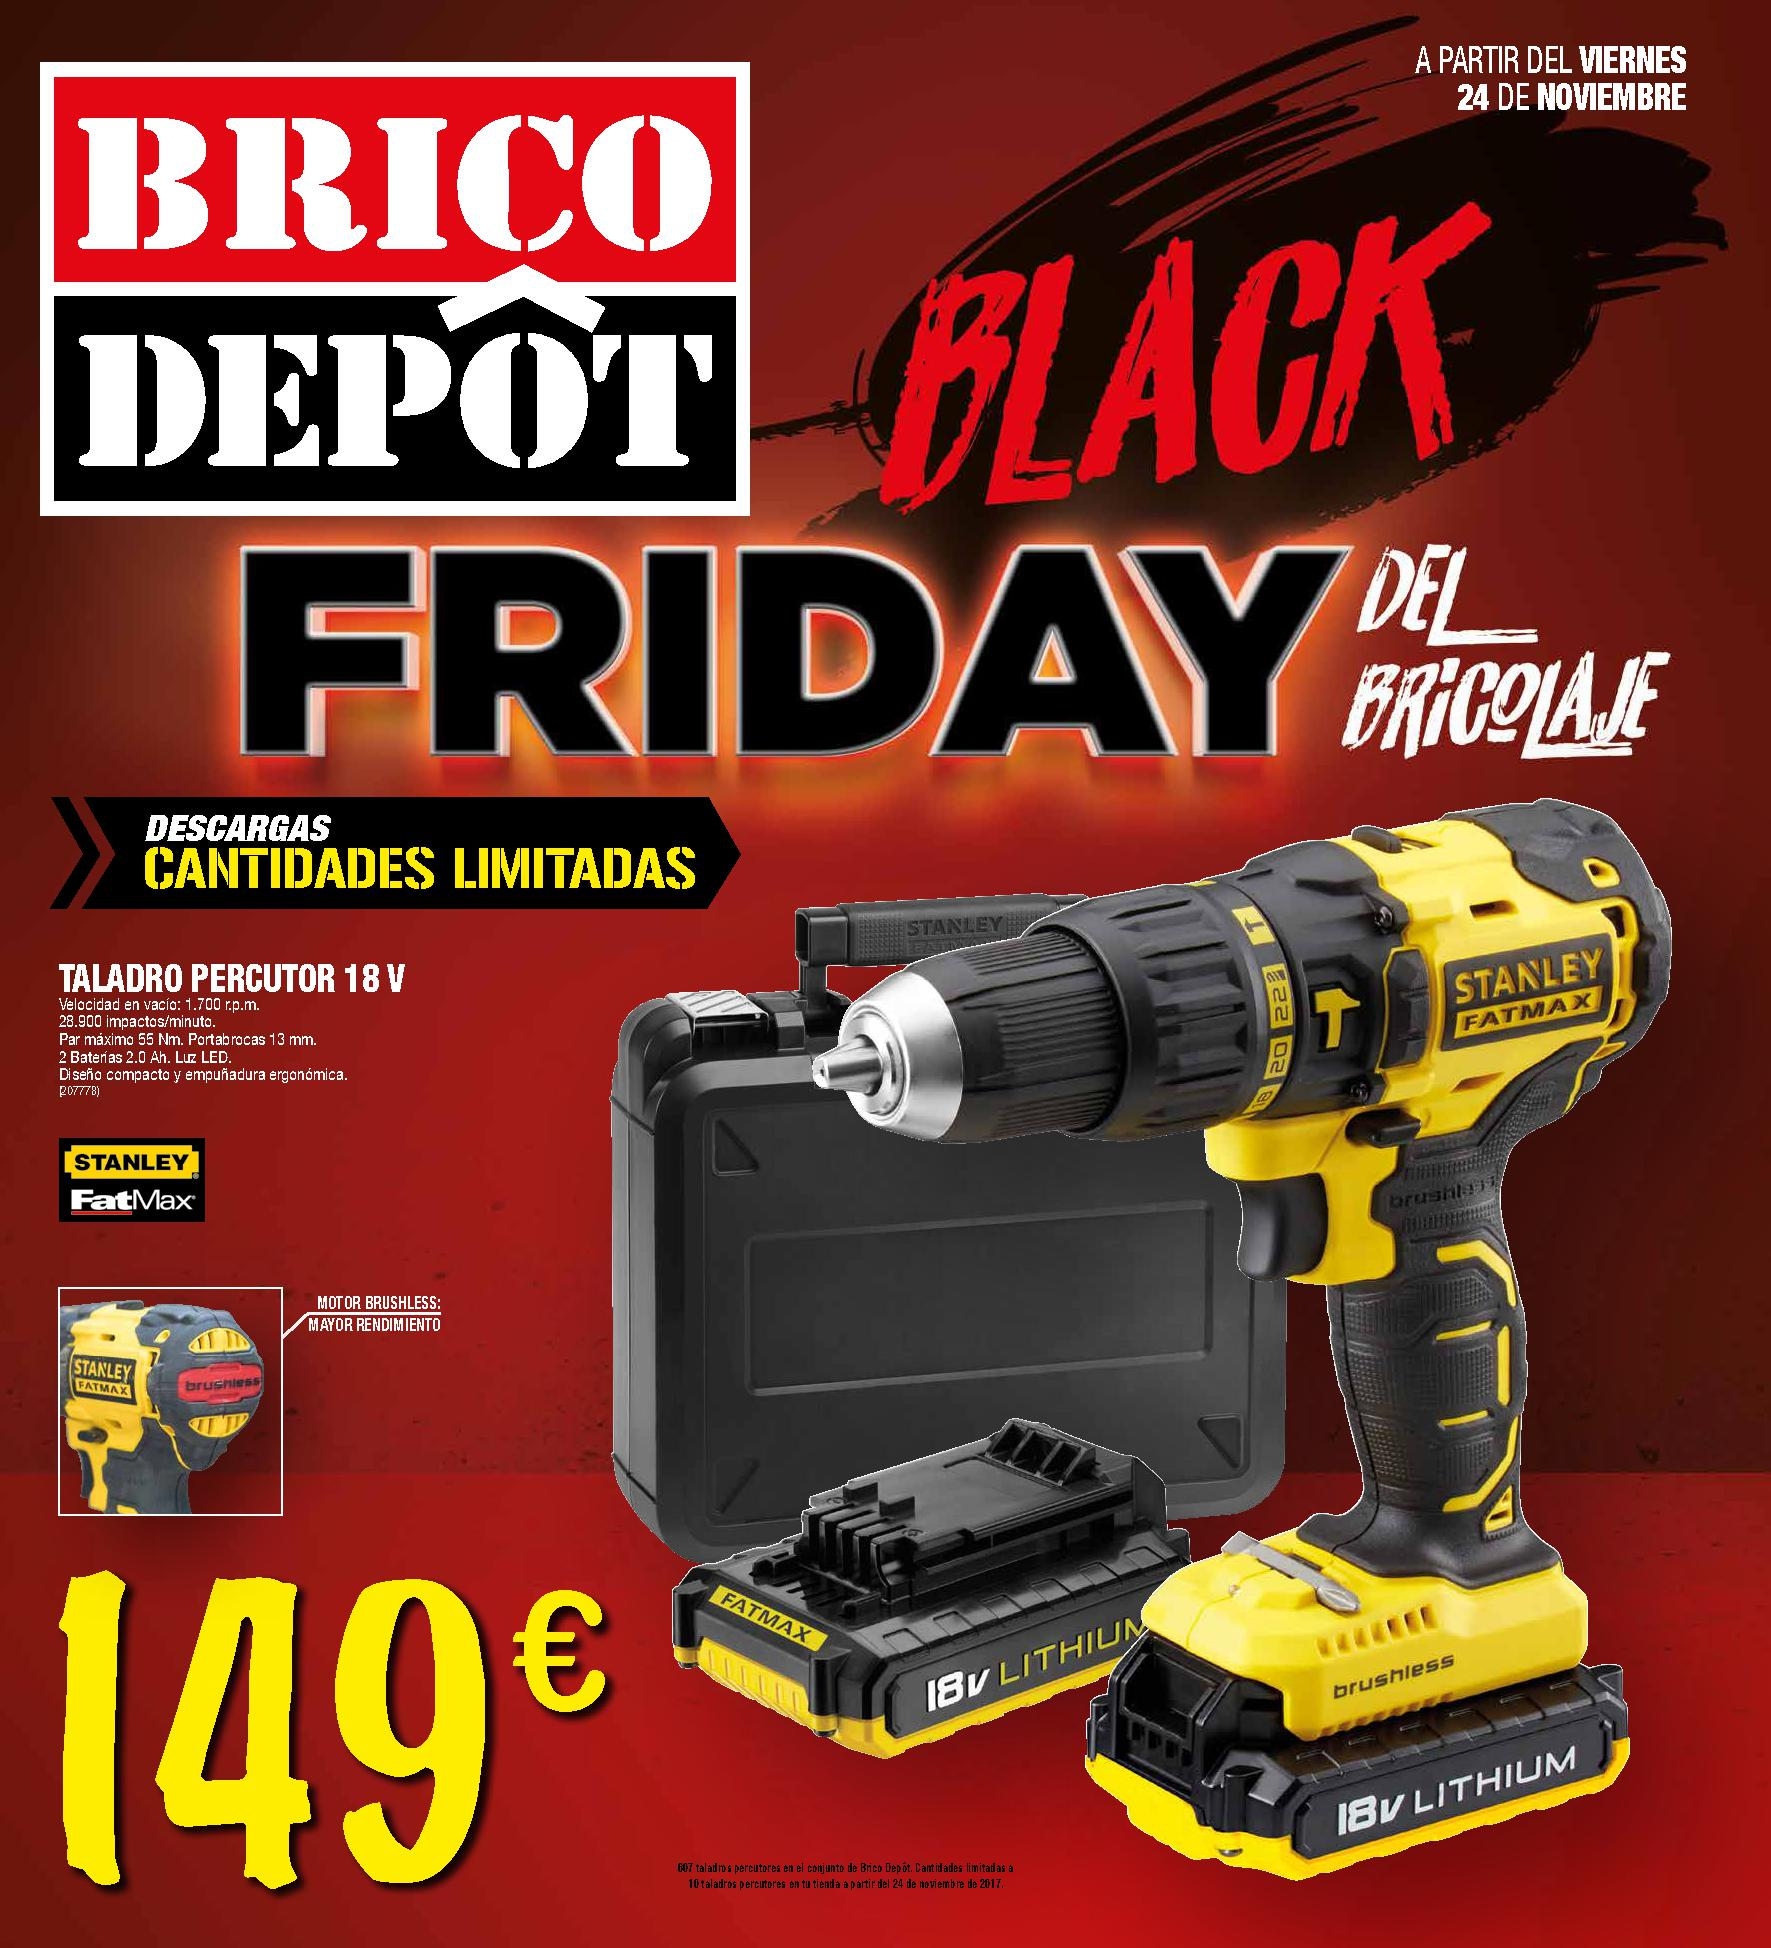 Black friday brico dep t noviembre 2017 imuebles for Catalogo brico depot cocinas 2017